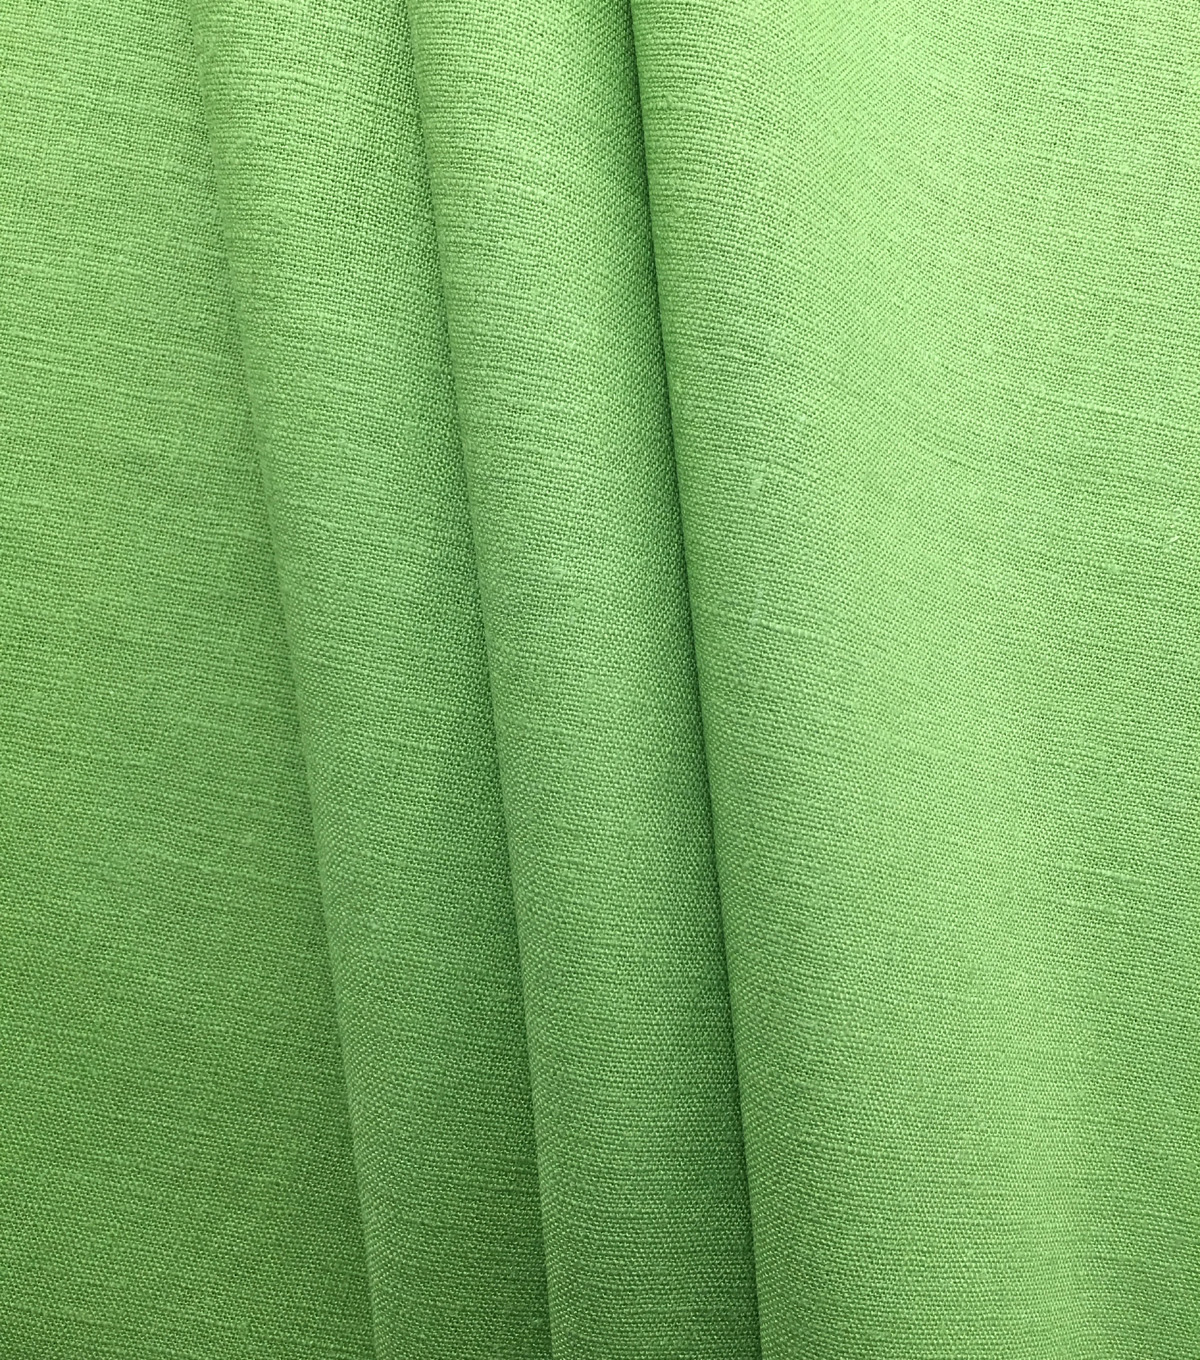 Apparel Linen Look Solid Fabric -Green